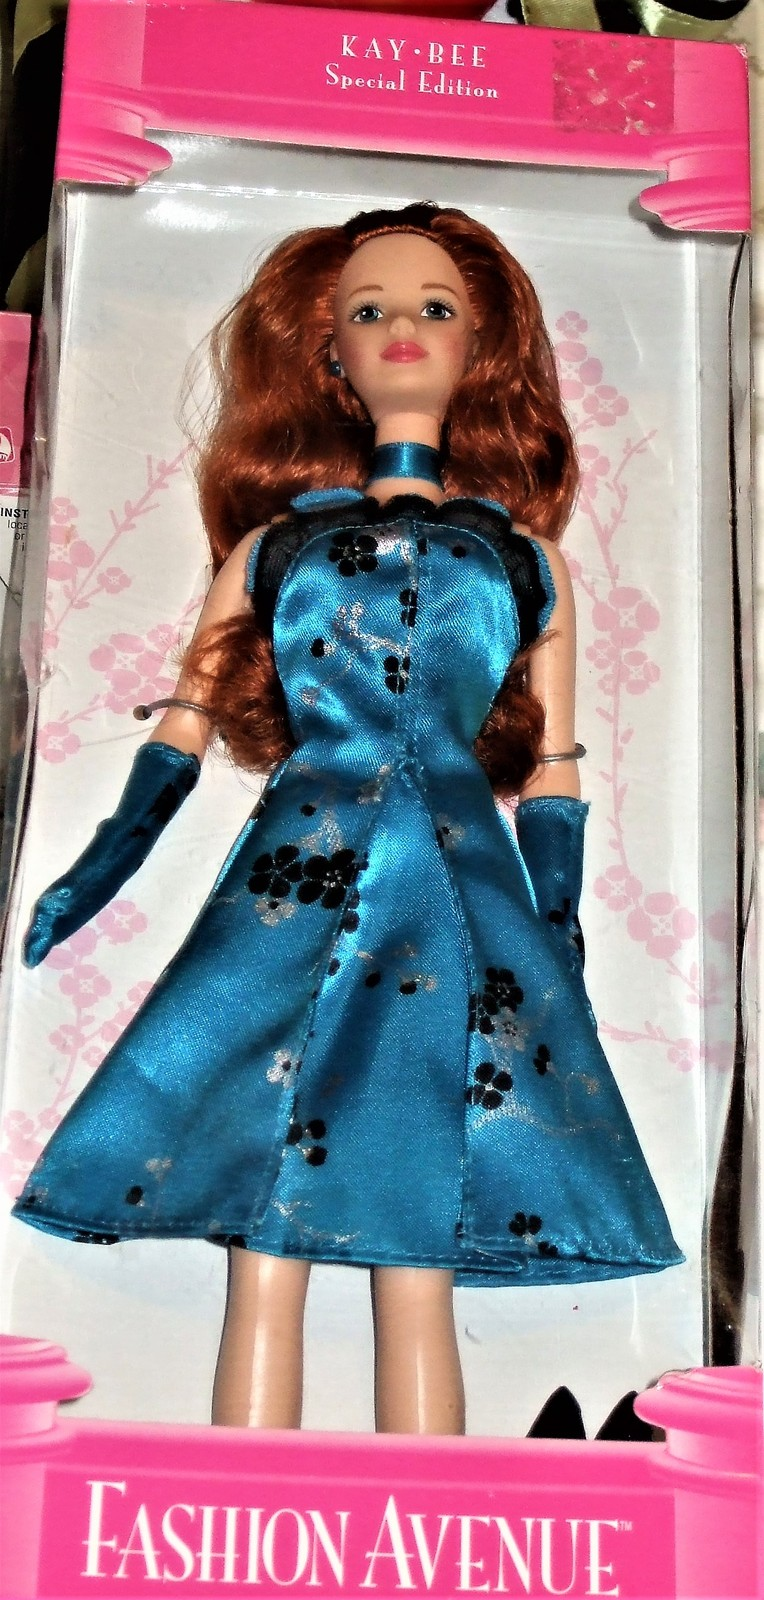 Barbie Doll - FASHION AVENUE Kay-Bee Special Ed (1998) Long Red Hair image 2